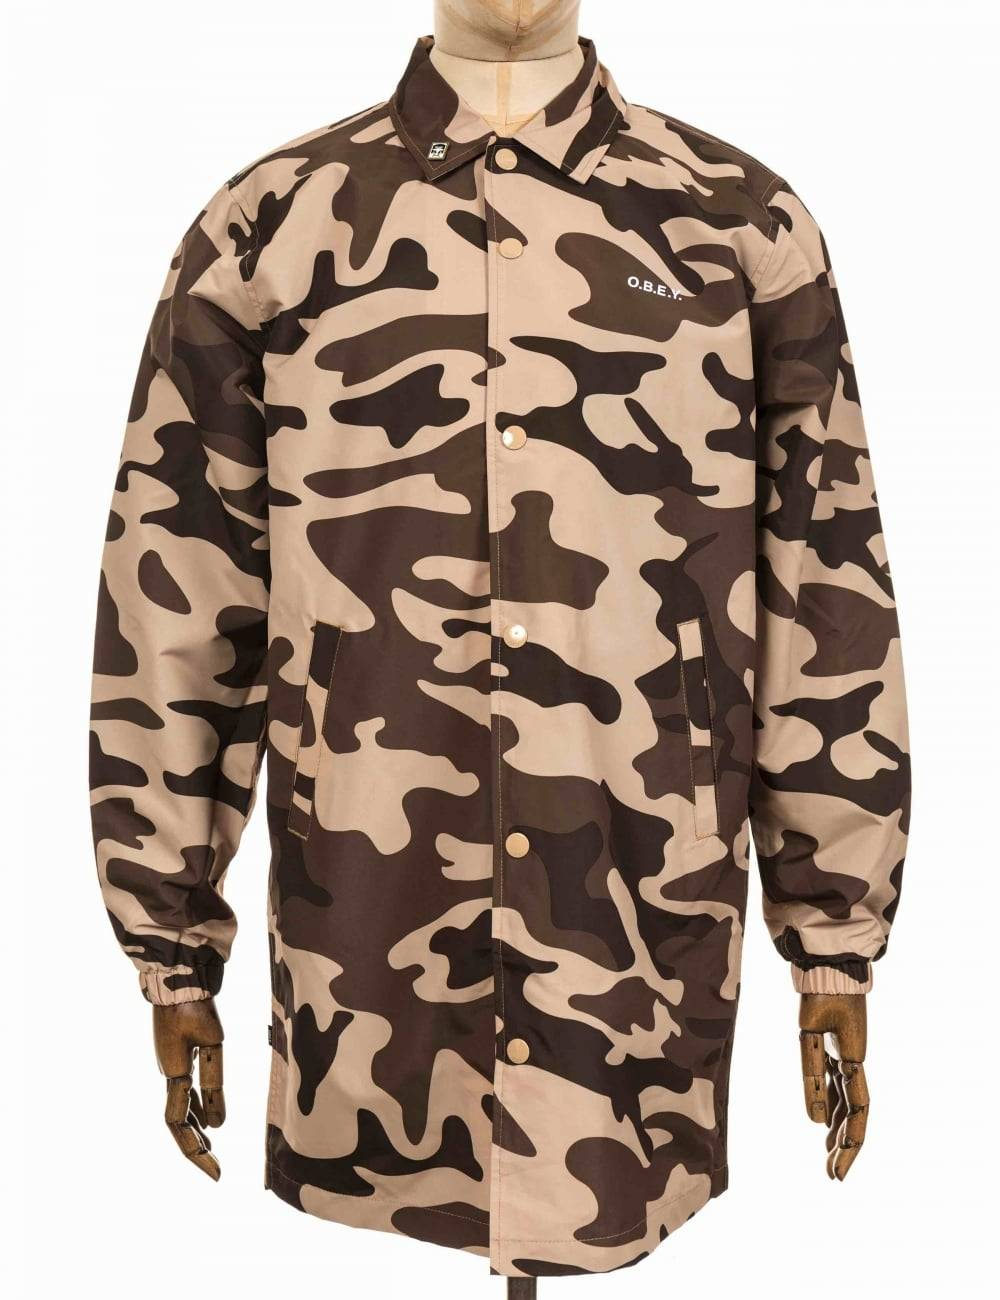 Obey Clothing Master Jacket - Camo Size: Small, Colour: Camo